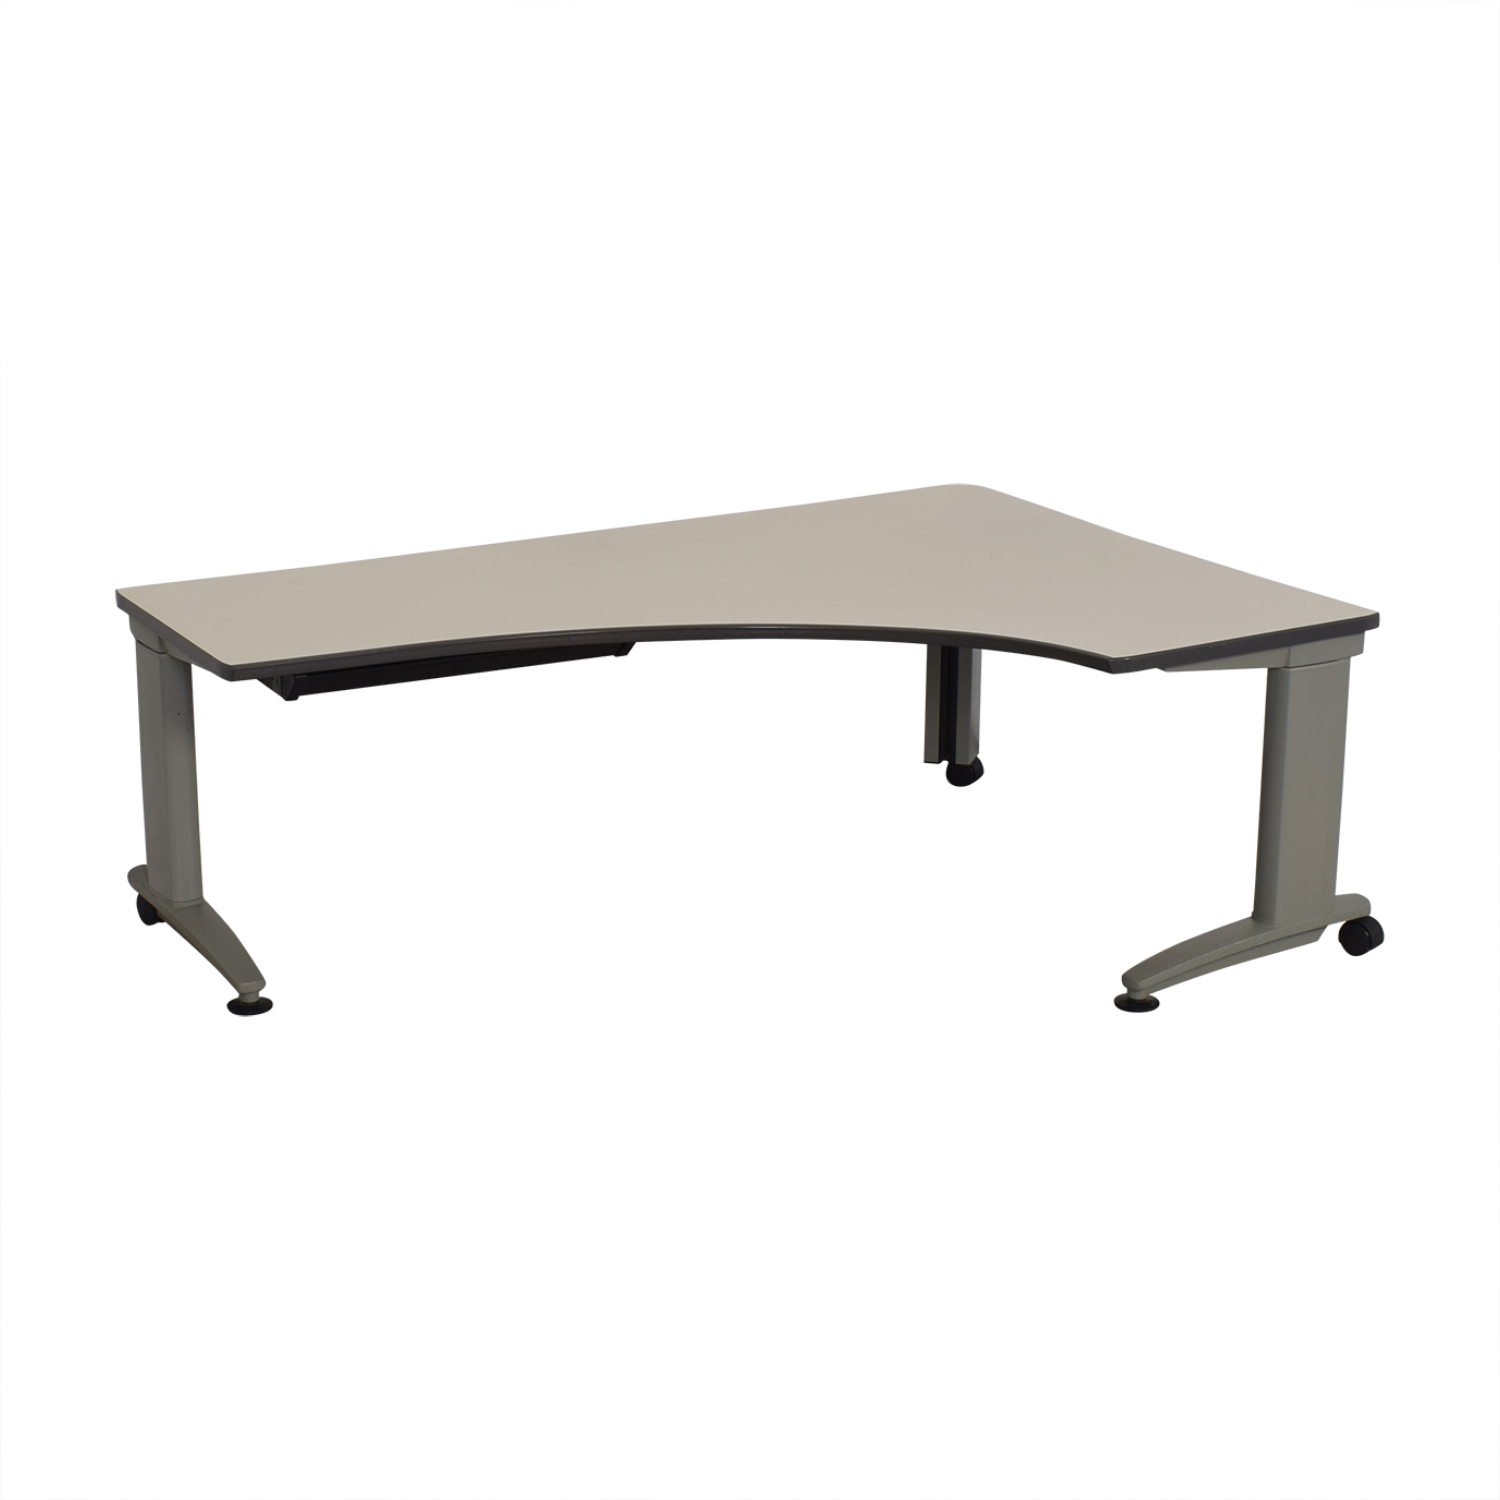 Knoll Knoll Currents Table Corner Desk Tables